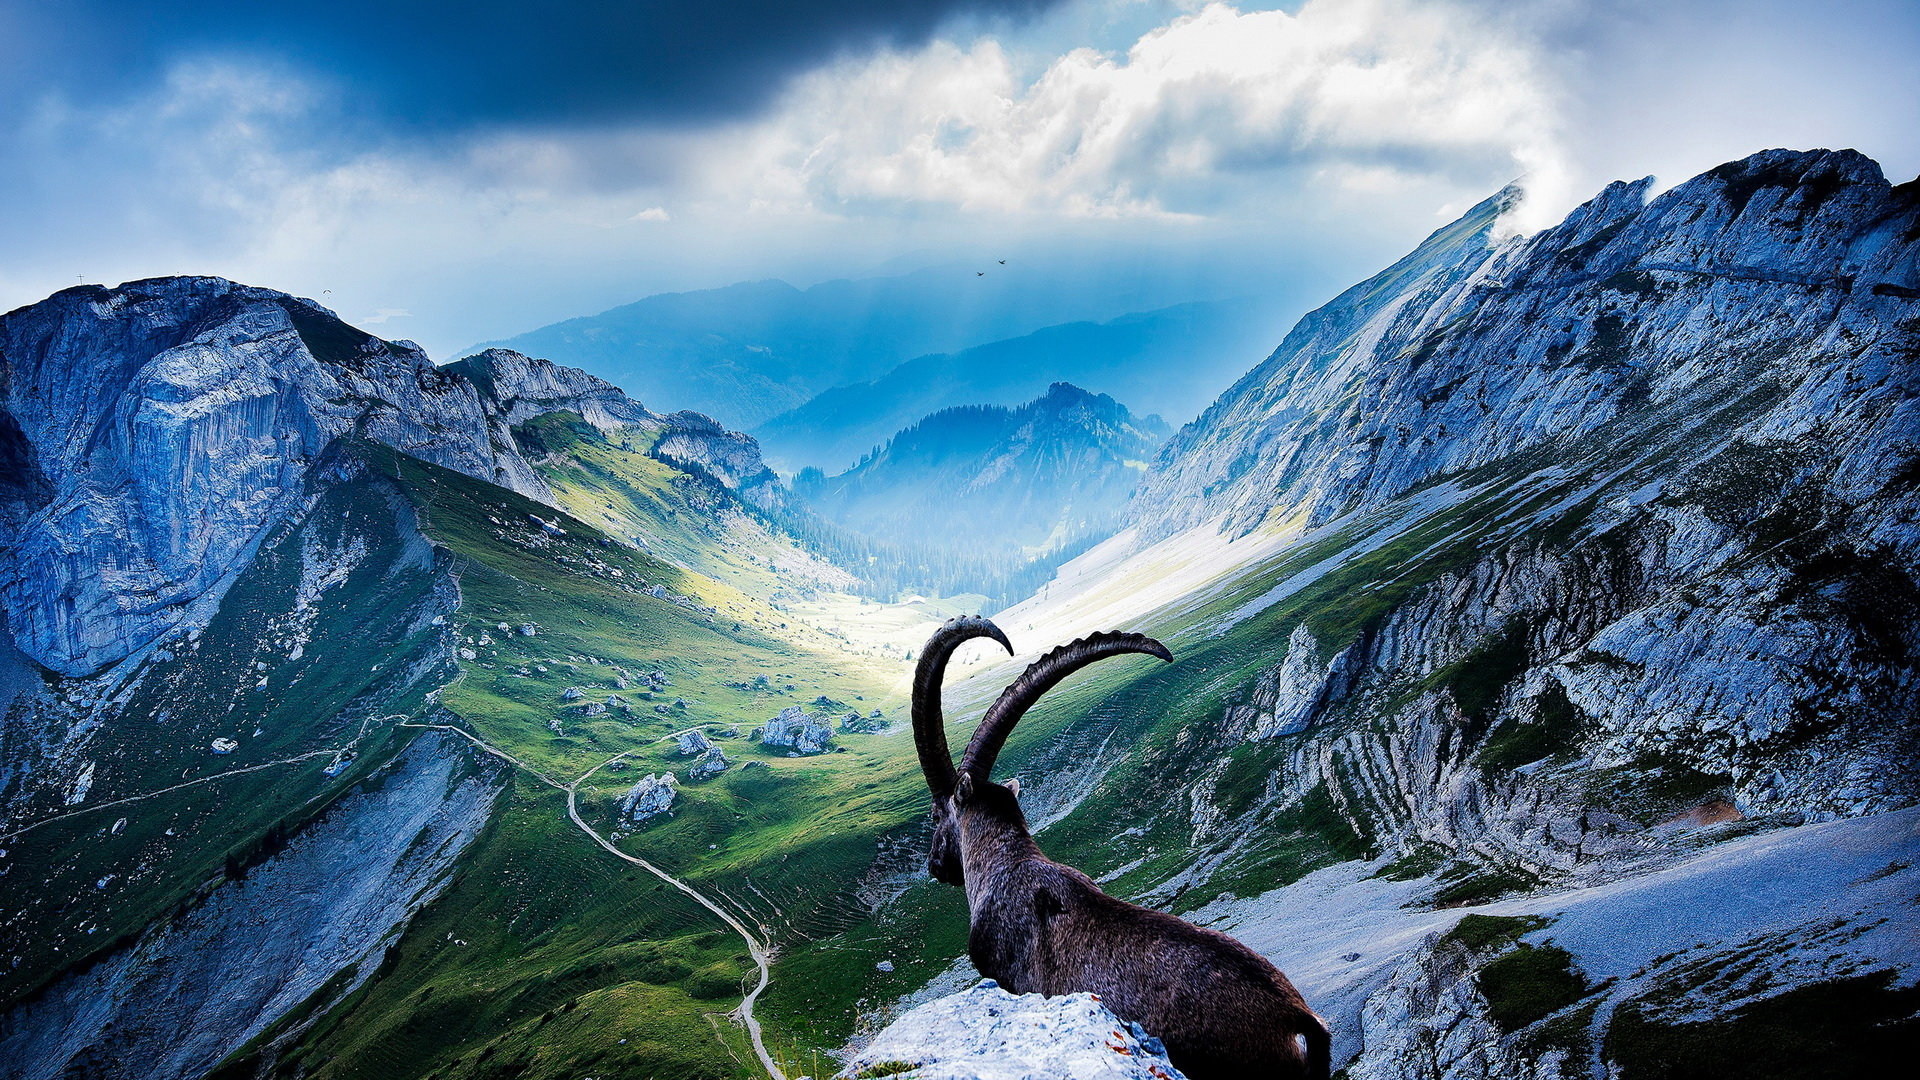 Download 1080p Goat desktop background ID:466783 for free